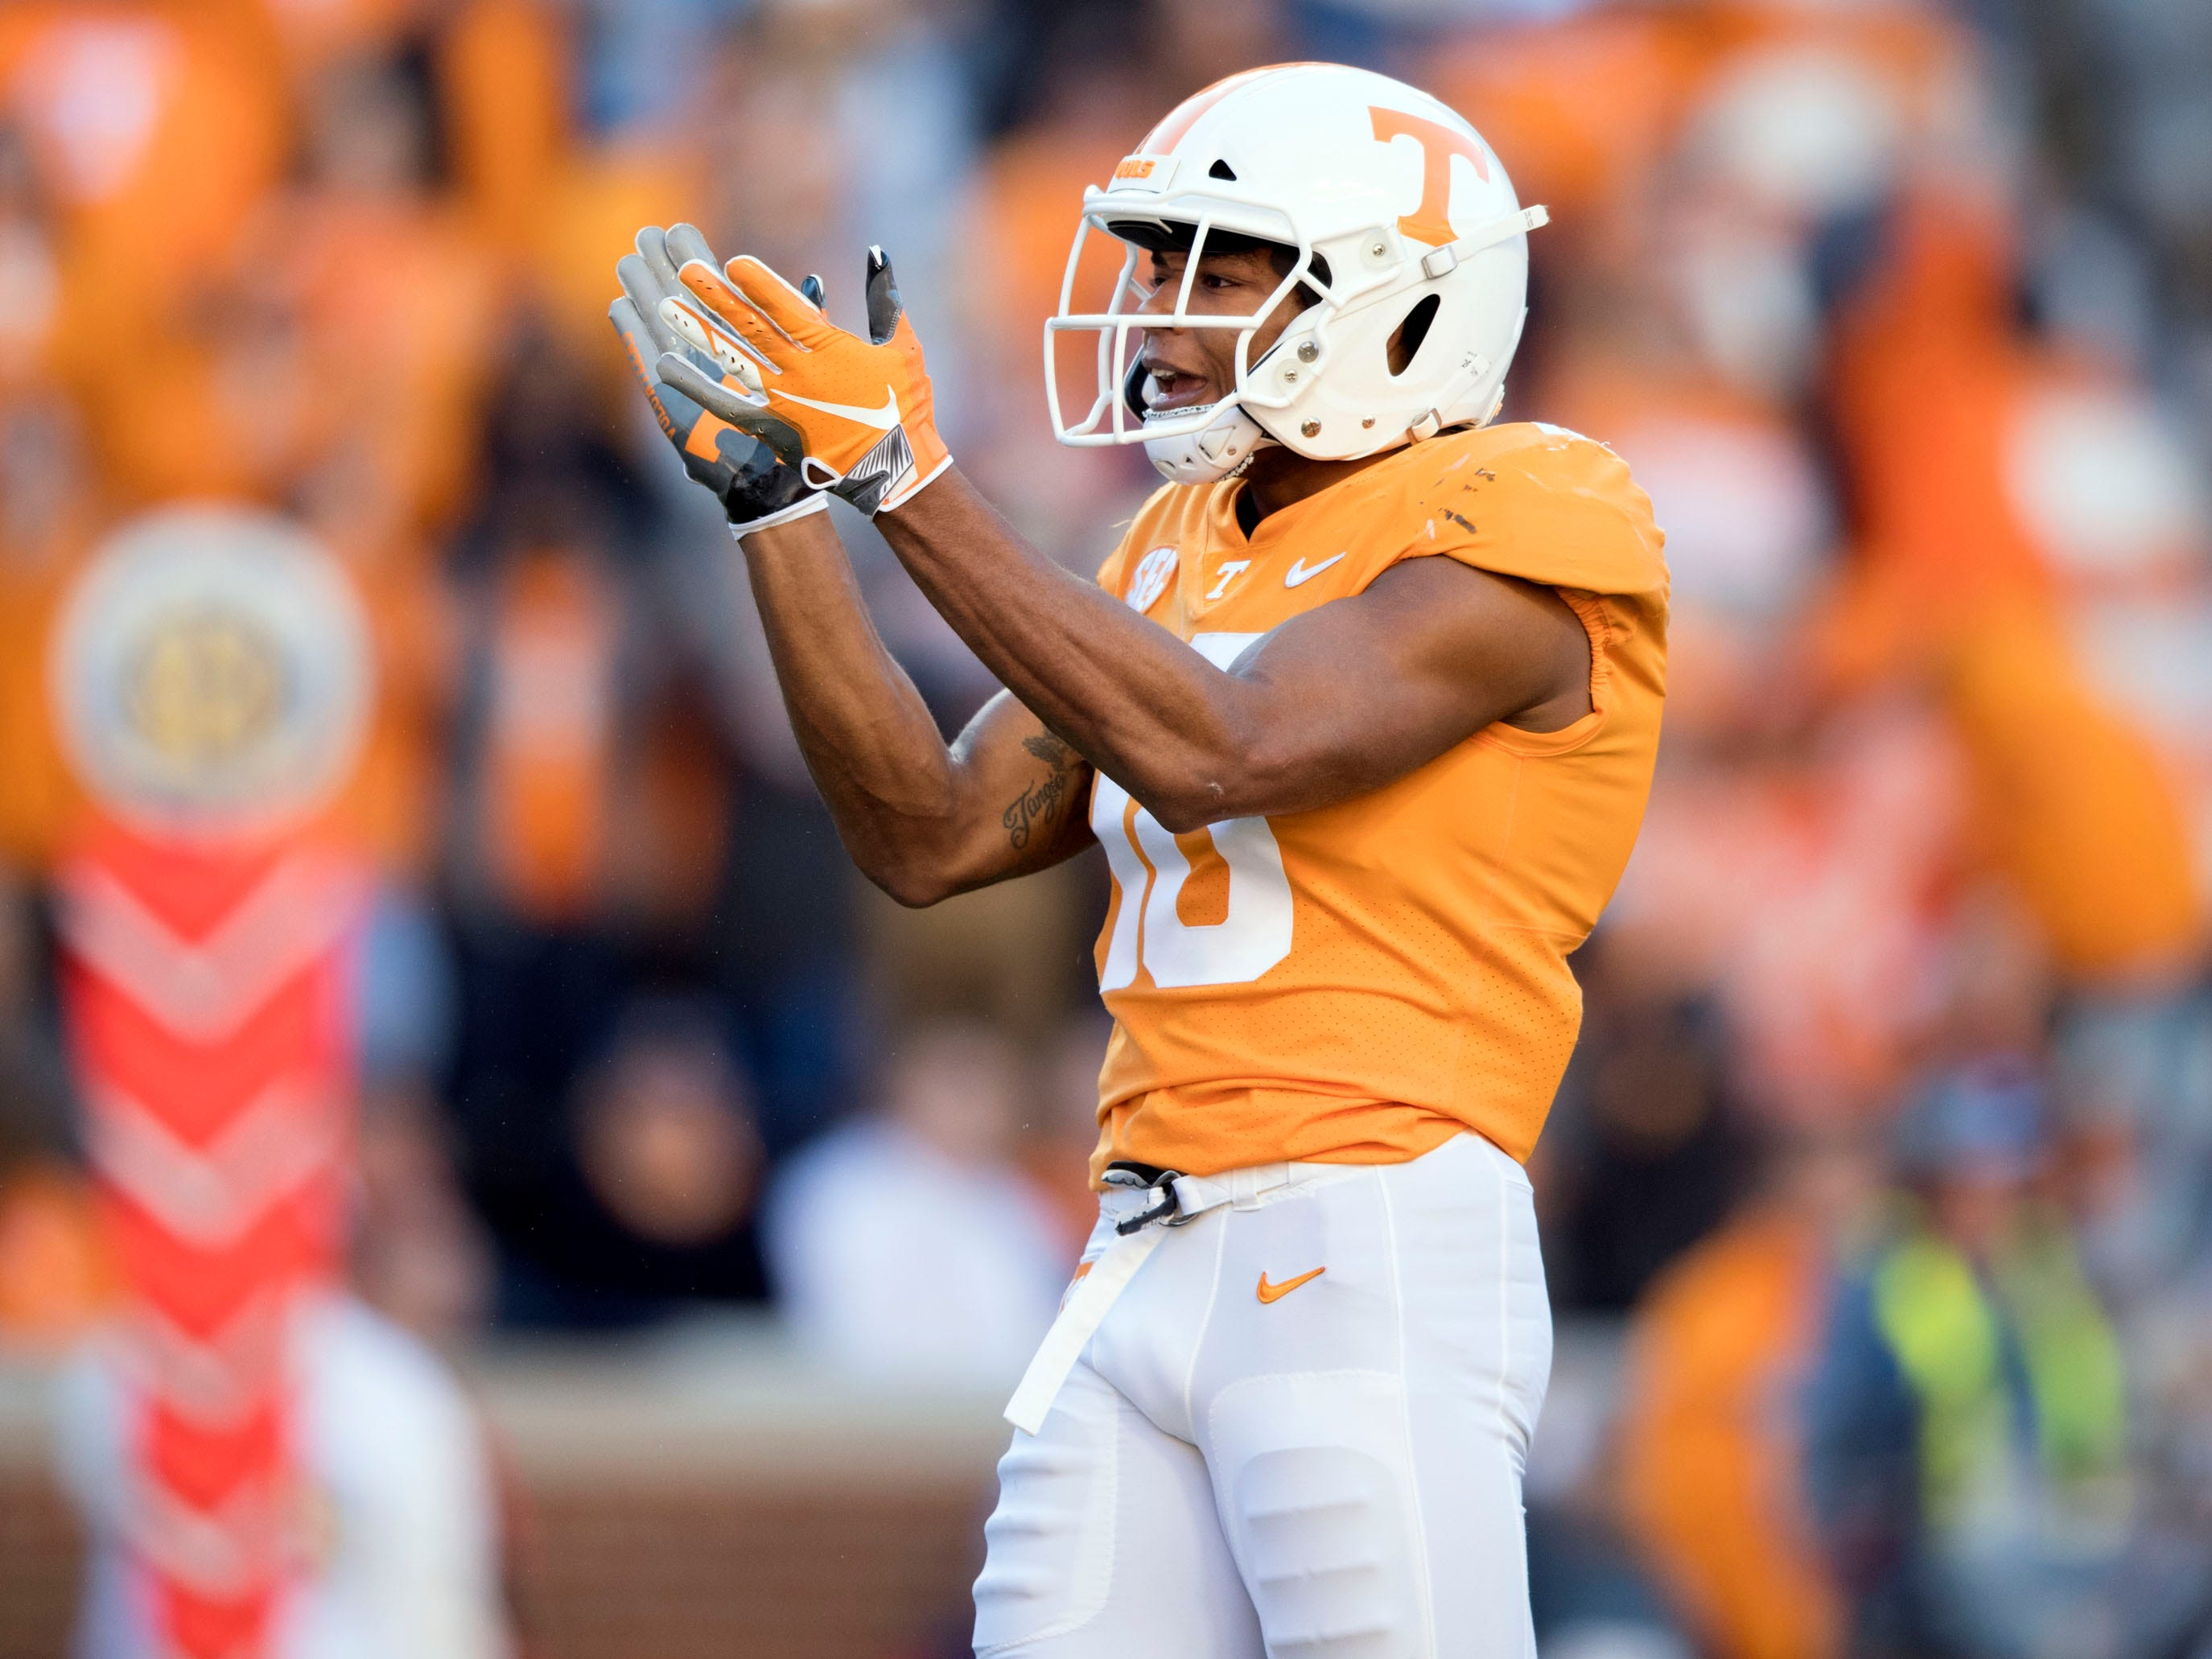 Tennessee defensive back Nigel Warrior (18)  celebrates after a defensive stop against Missouri during the Tennessee and Missouri football game on Saturday, November 17, 2018.